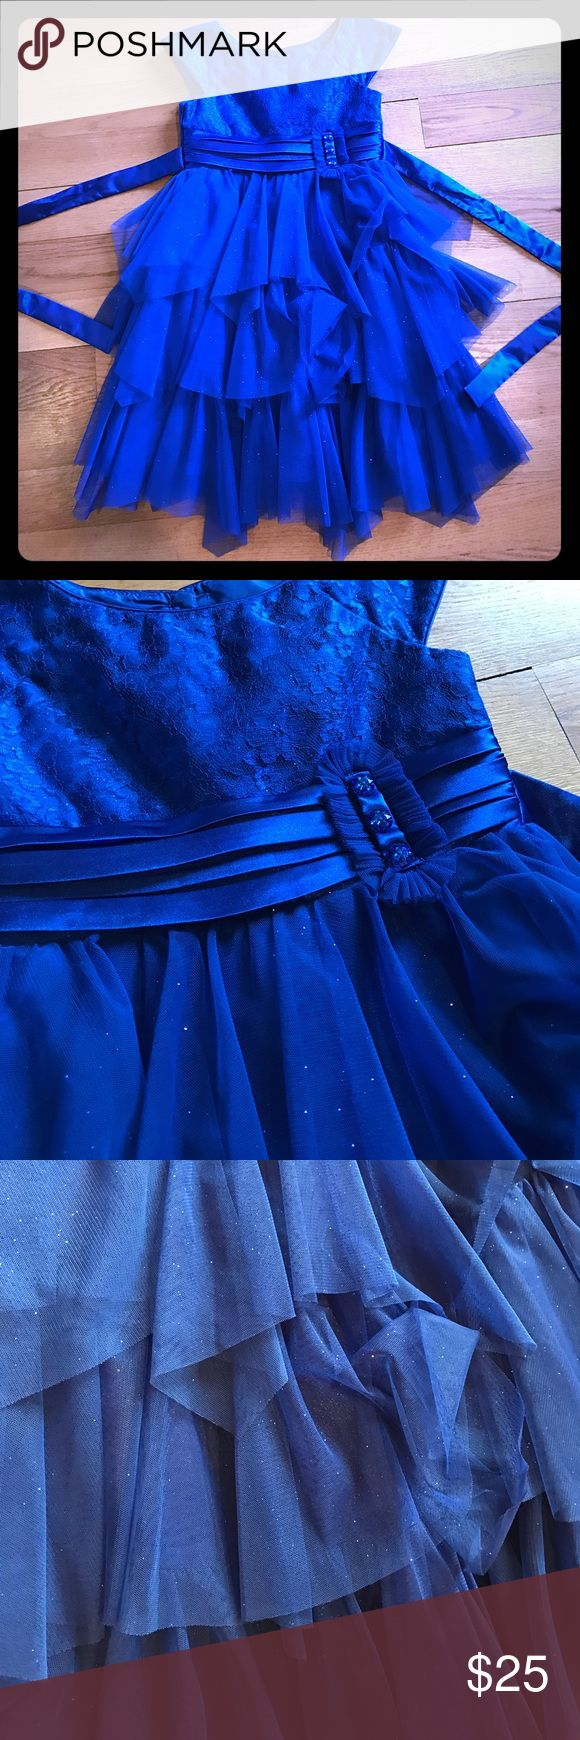 🌟Royal Blue Dress 🌟 Beautiful royal blue dress for girl . In perfect condition . Size 7. Open to offers ... Dresses Formal